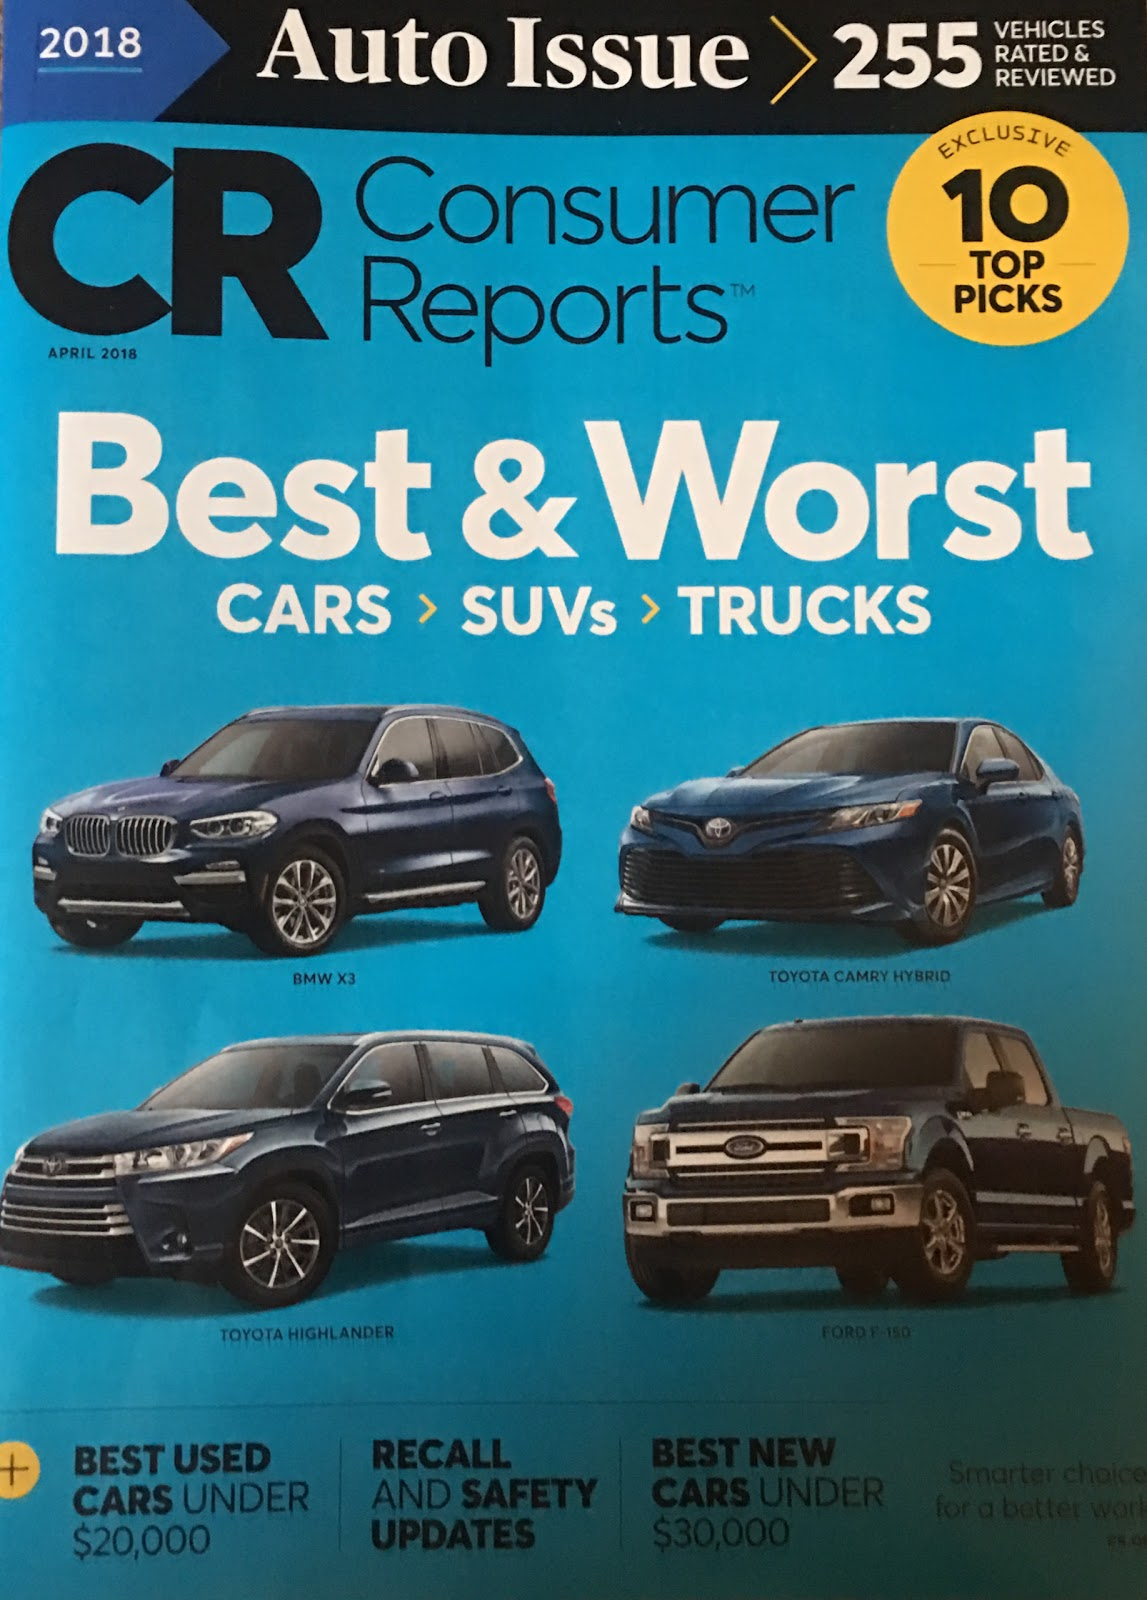 Consumer Reports Annual Auto Issue For 2018 Shows One Gas Electric Hybrid On The Cover And Chevrolet Bolt Is First All Car To Make